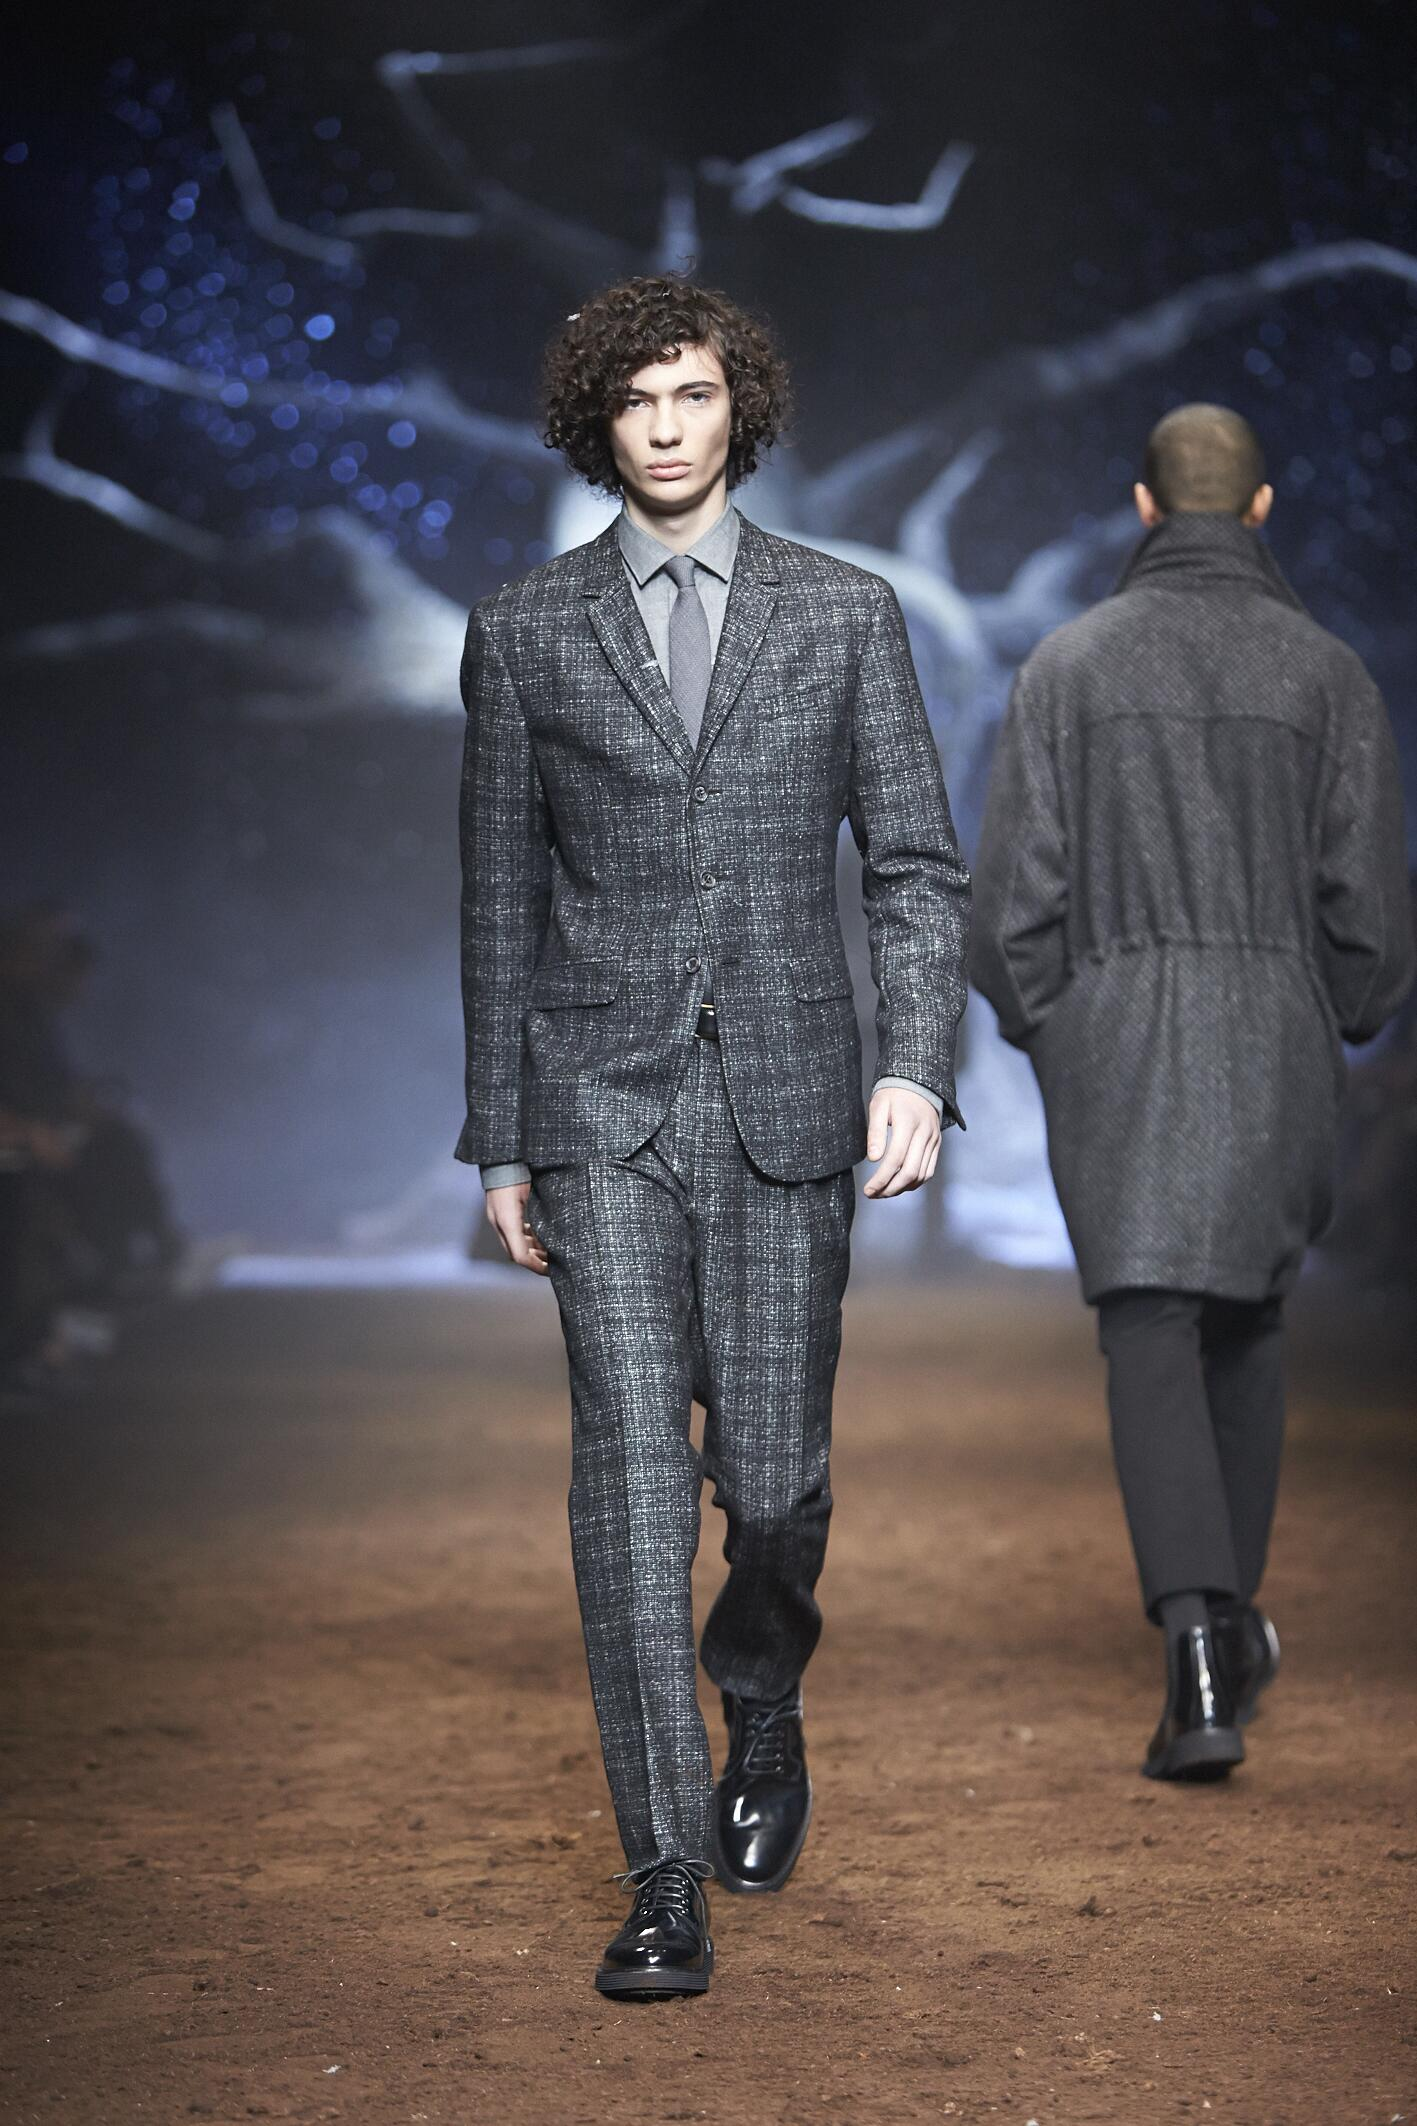 Fall Fashion Man Suit